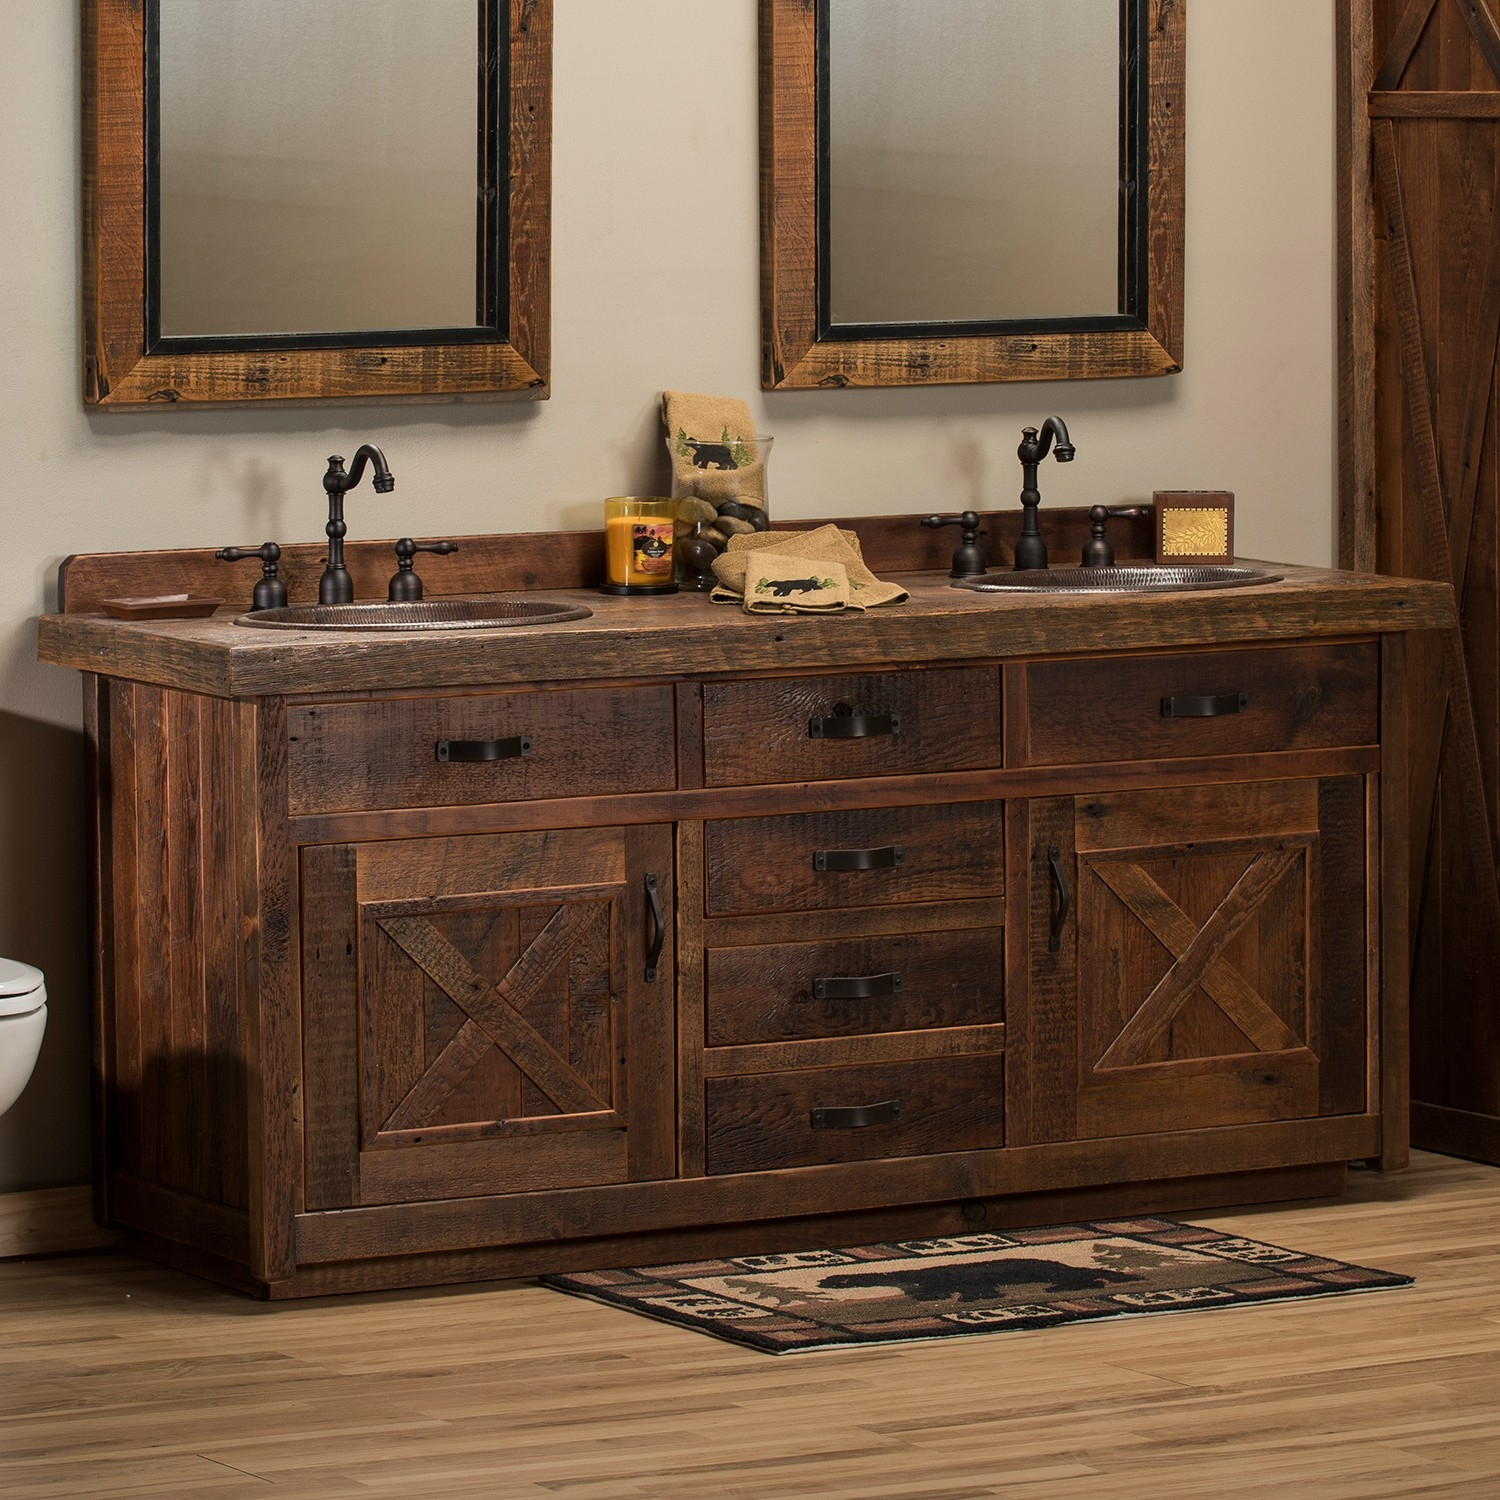 Rustic Vanity Ideas Create New Aesthetic Rustic Bathroom Vanities Layjao